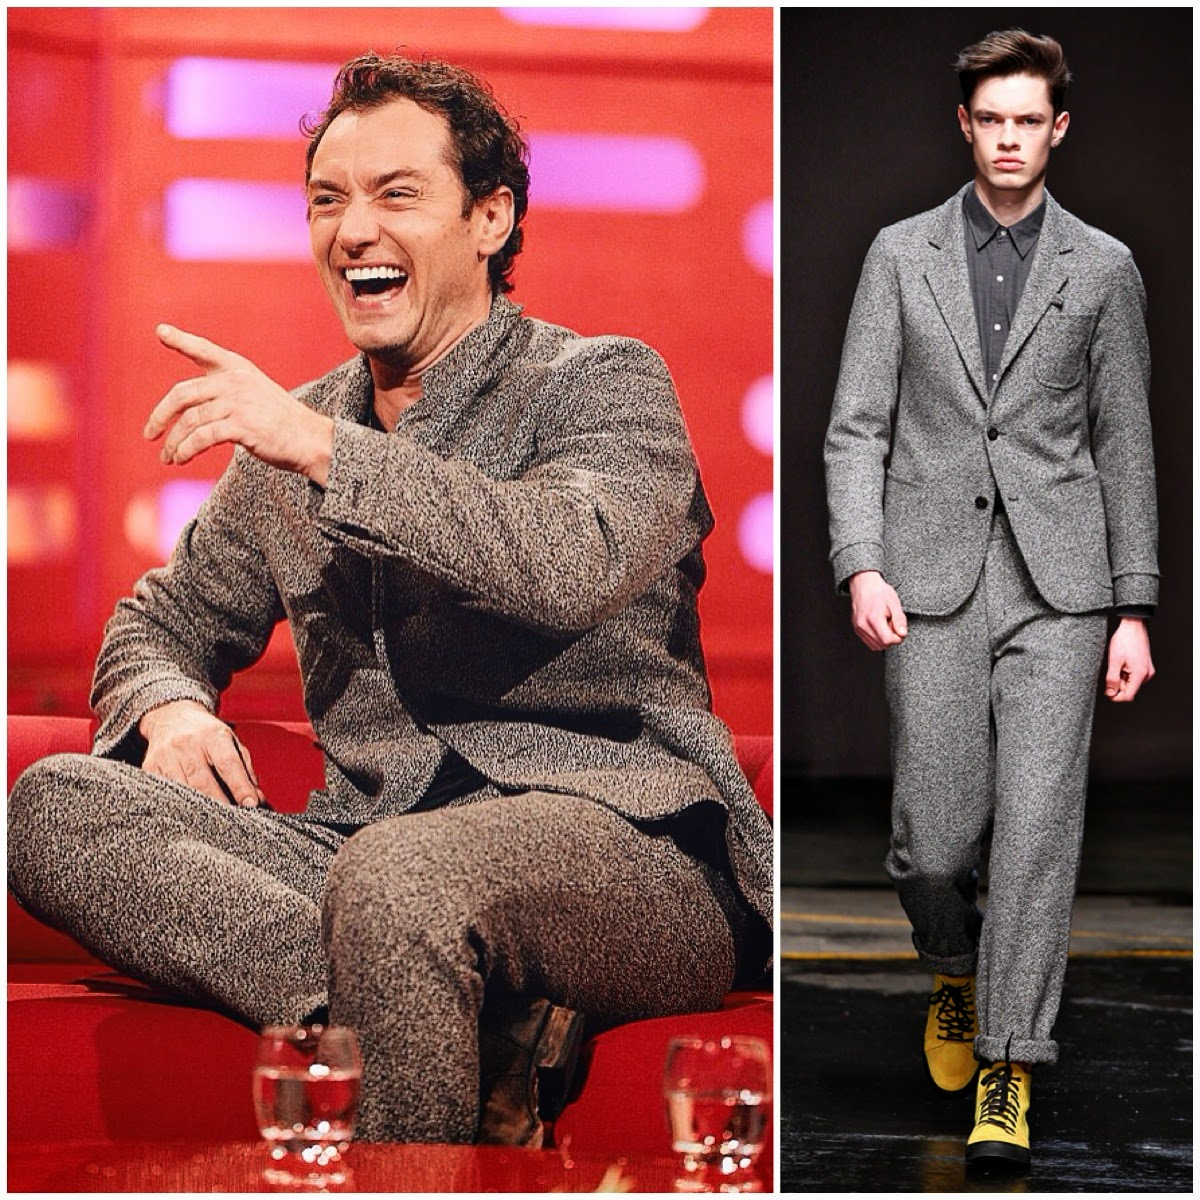 Jude Law wears Oliver Spencer Fall Winter 2014 grey speckled suit for Graham Norton show 12th December 2014 London